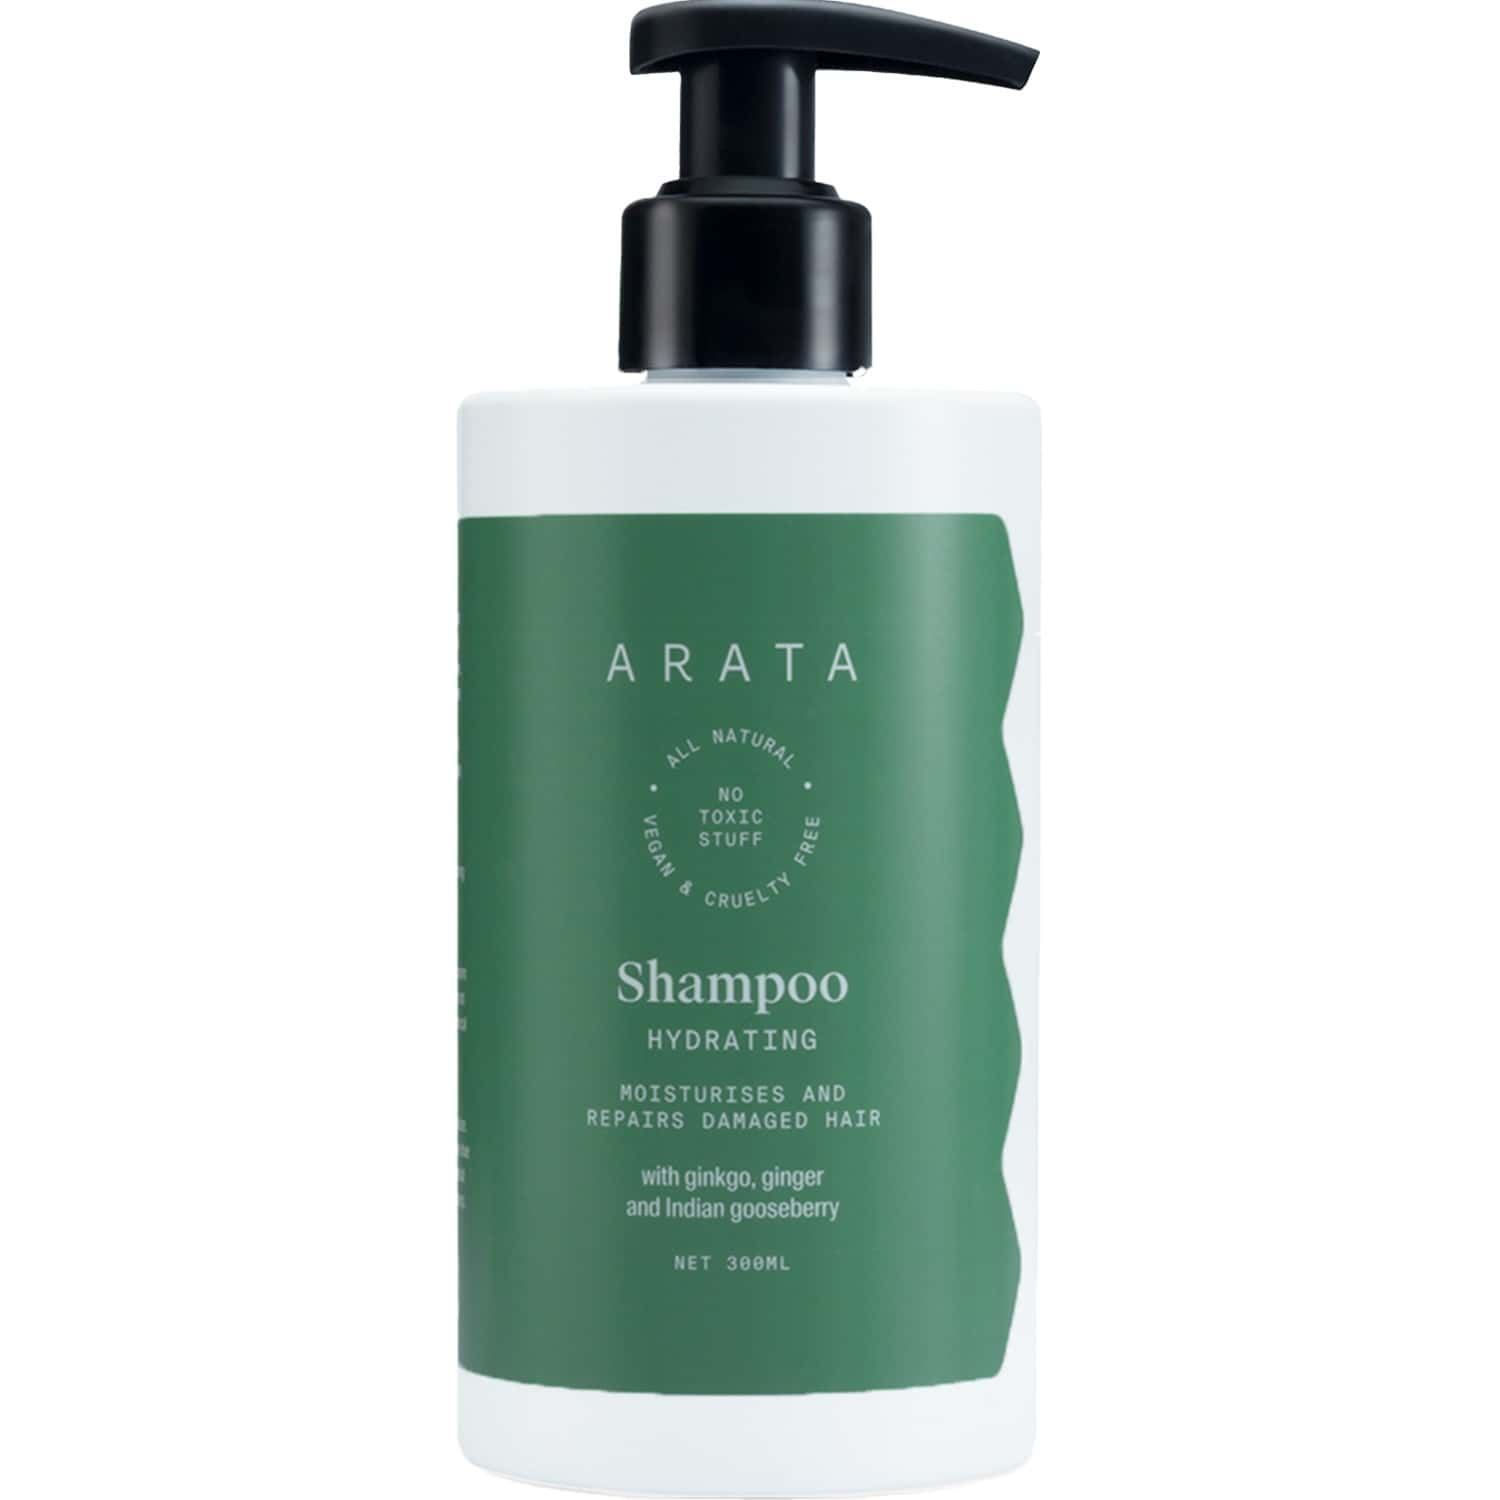 Arata Natural Hydrating Hair Shampoo With Ginkgo, Ginger & Indian Gooseberry For Women & Men    All-natural, Vegan & Cruelty-free    Moisturizes & Repairs Damaged Hair - (300 Ml)